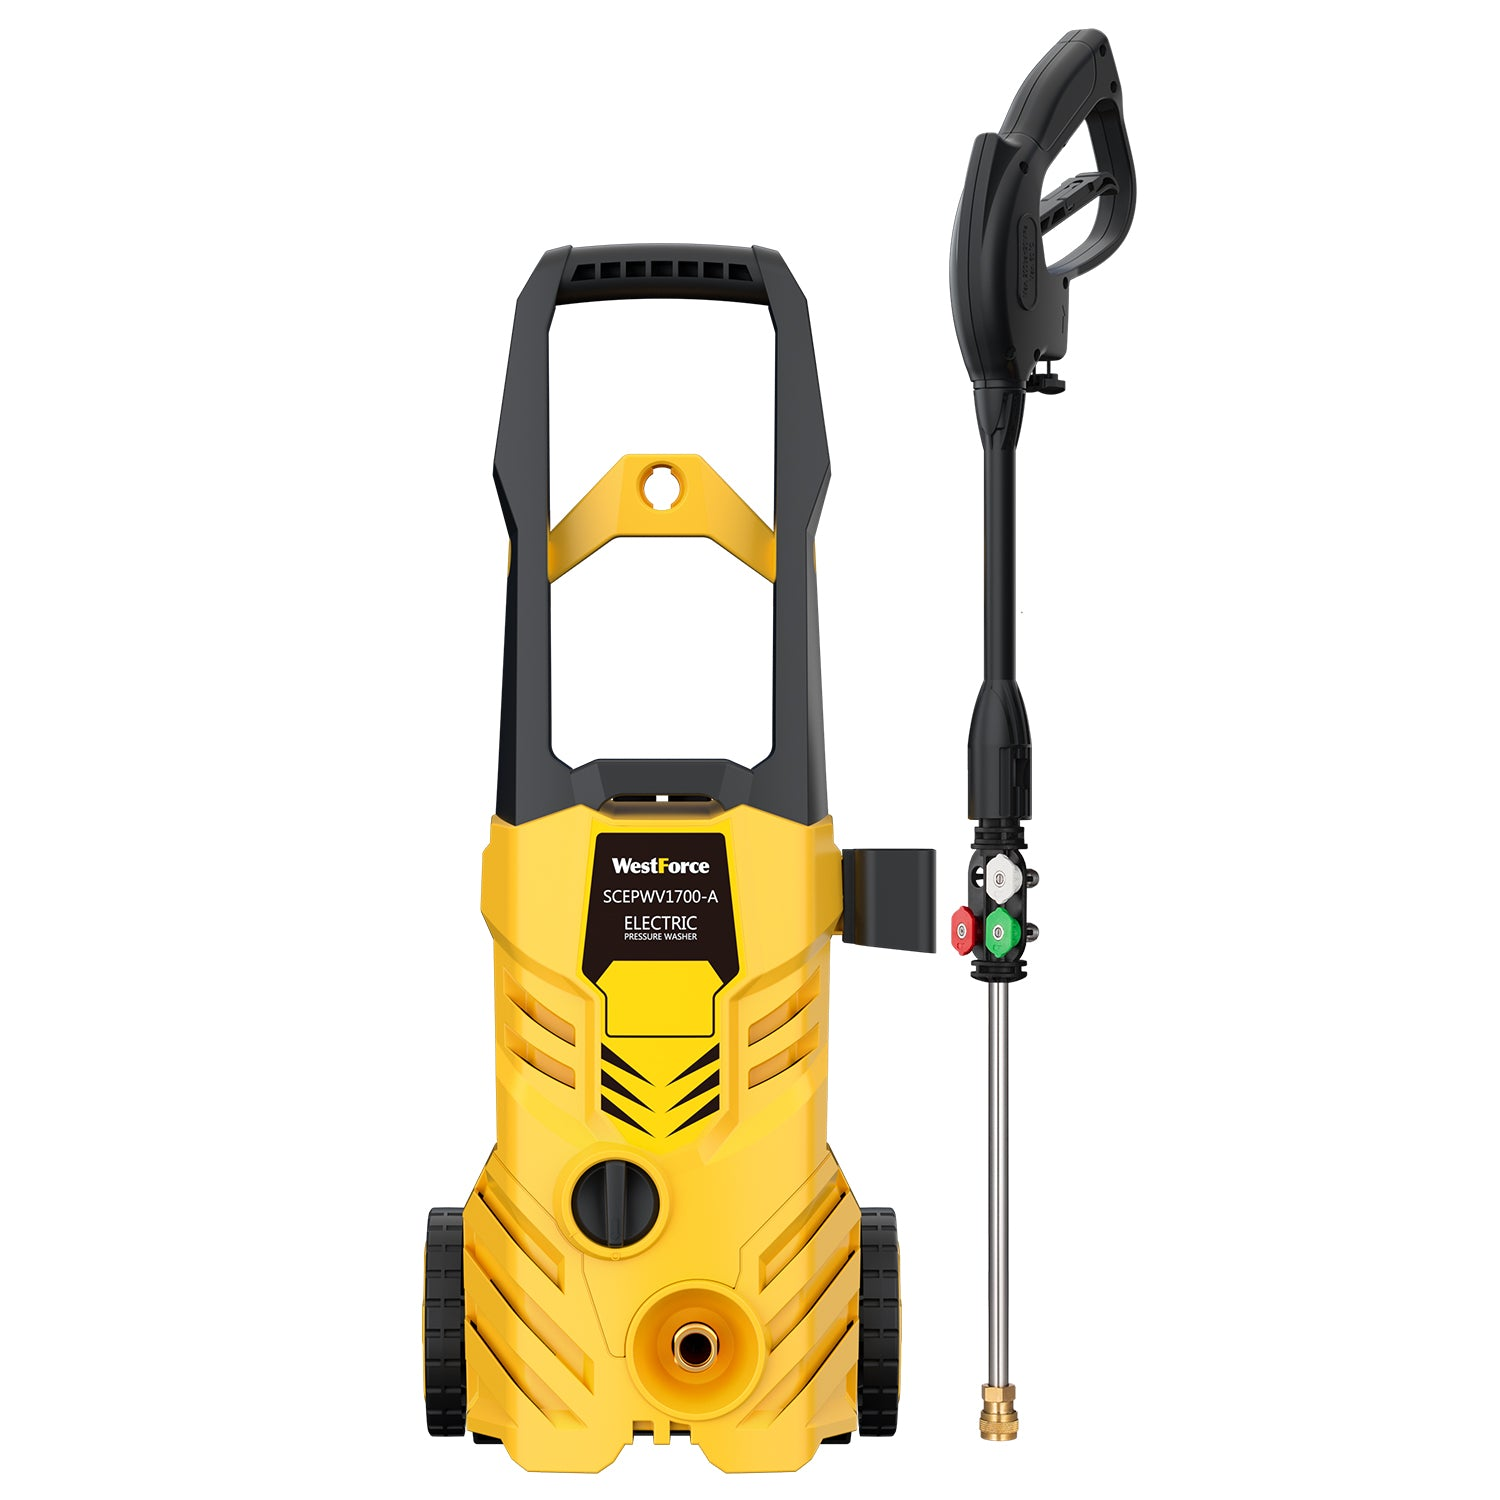 WestForce 2800 PSI 1.76 GPM 1600 W Electric Pressure Washer